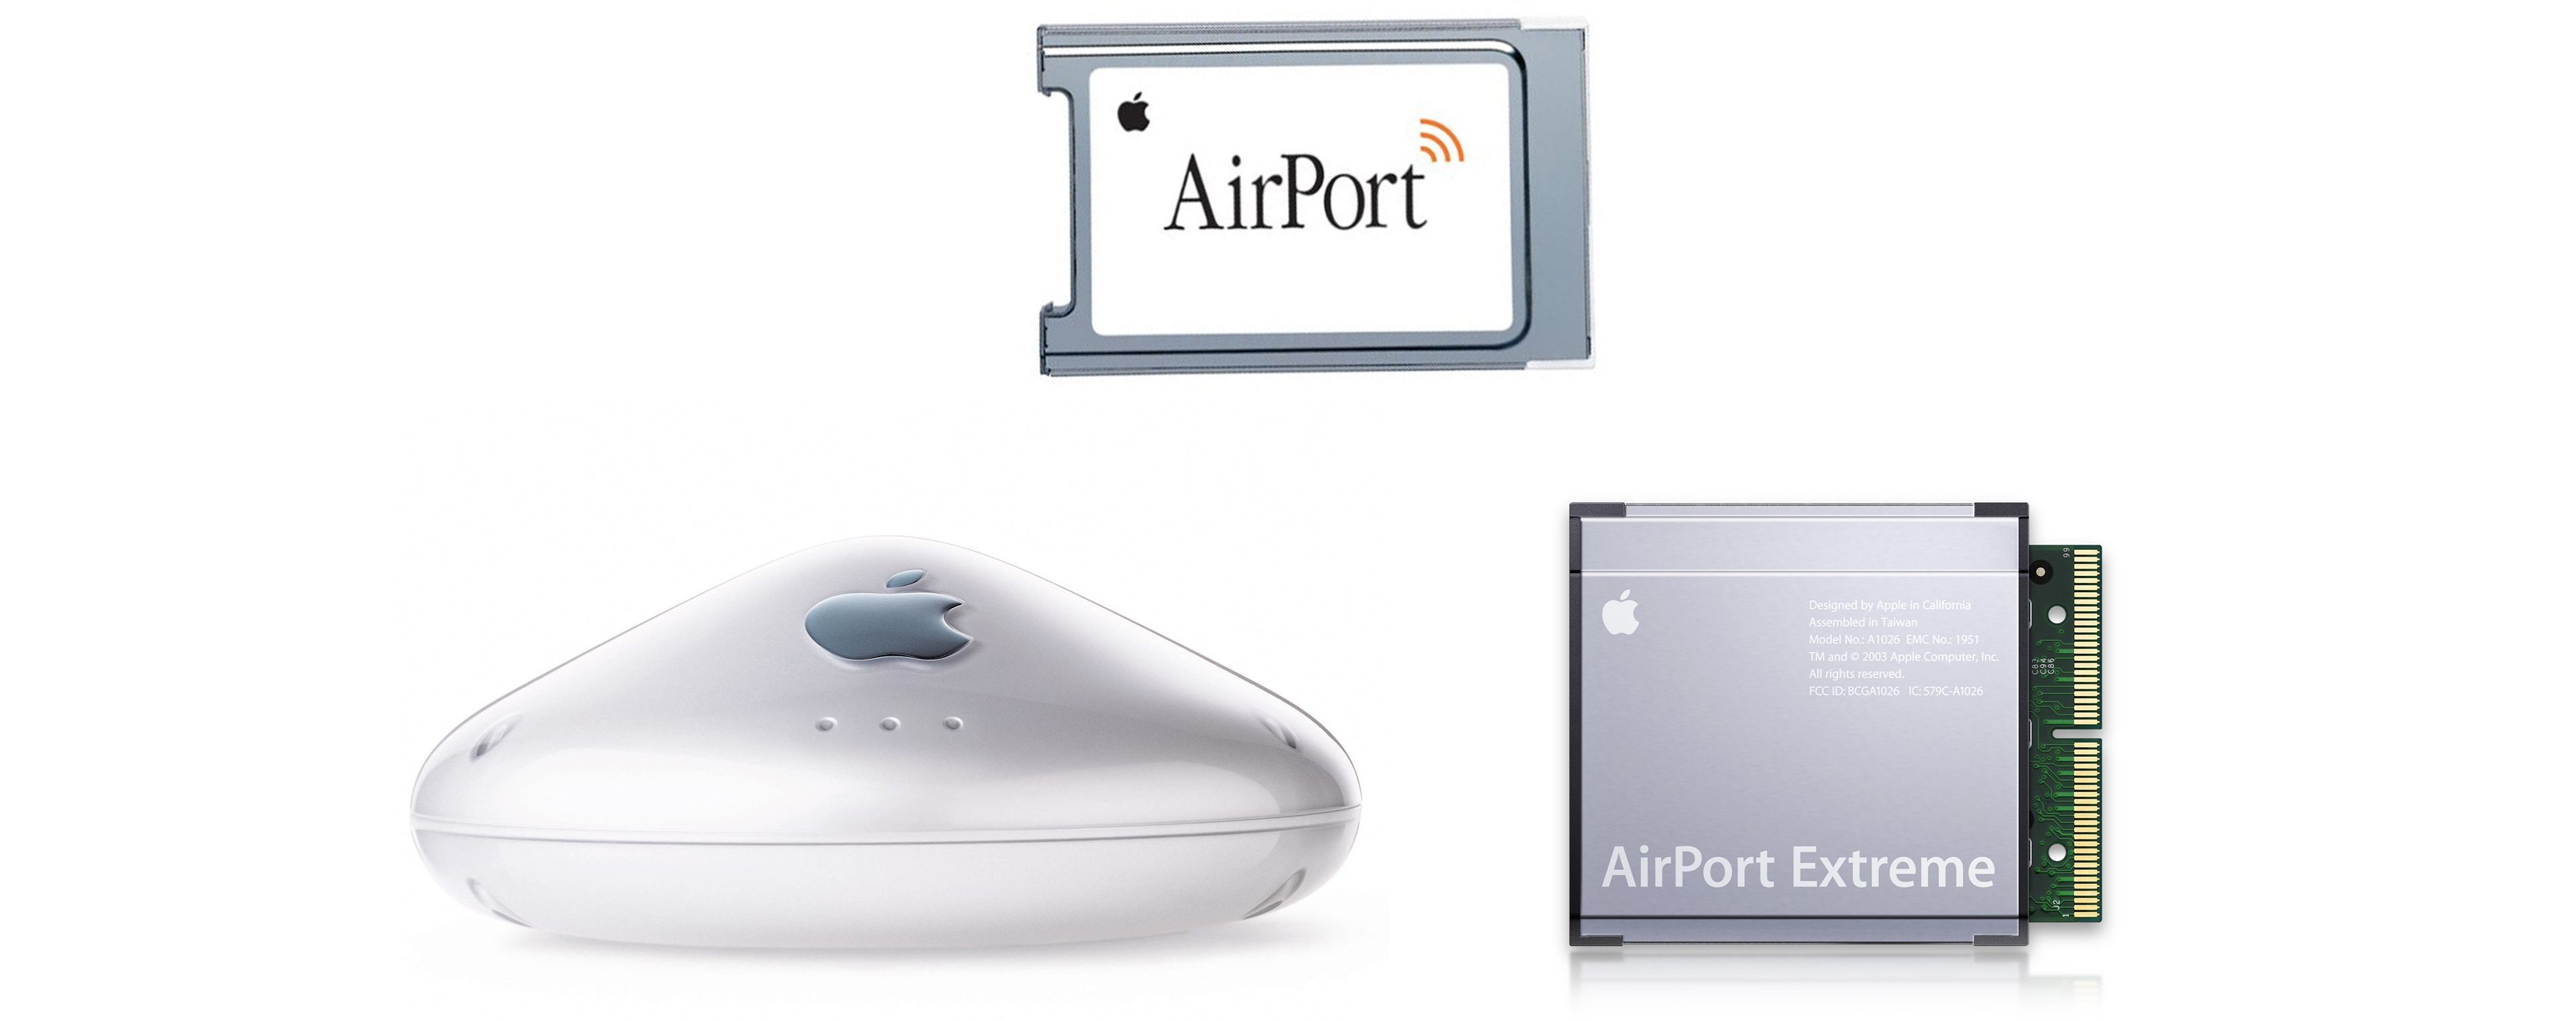 Apple officially discontinues AirPort router line, no plans